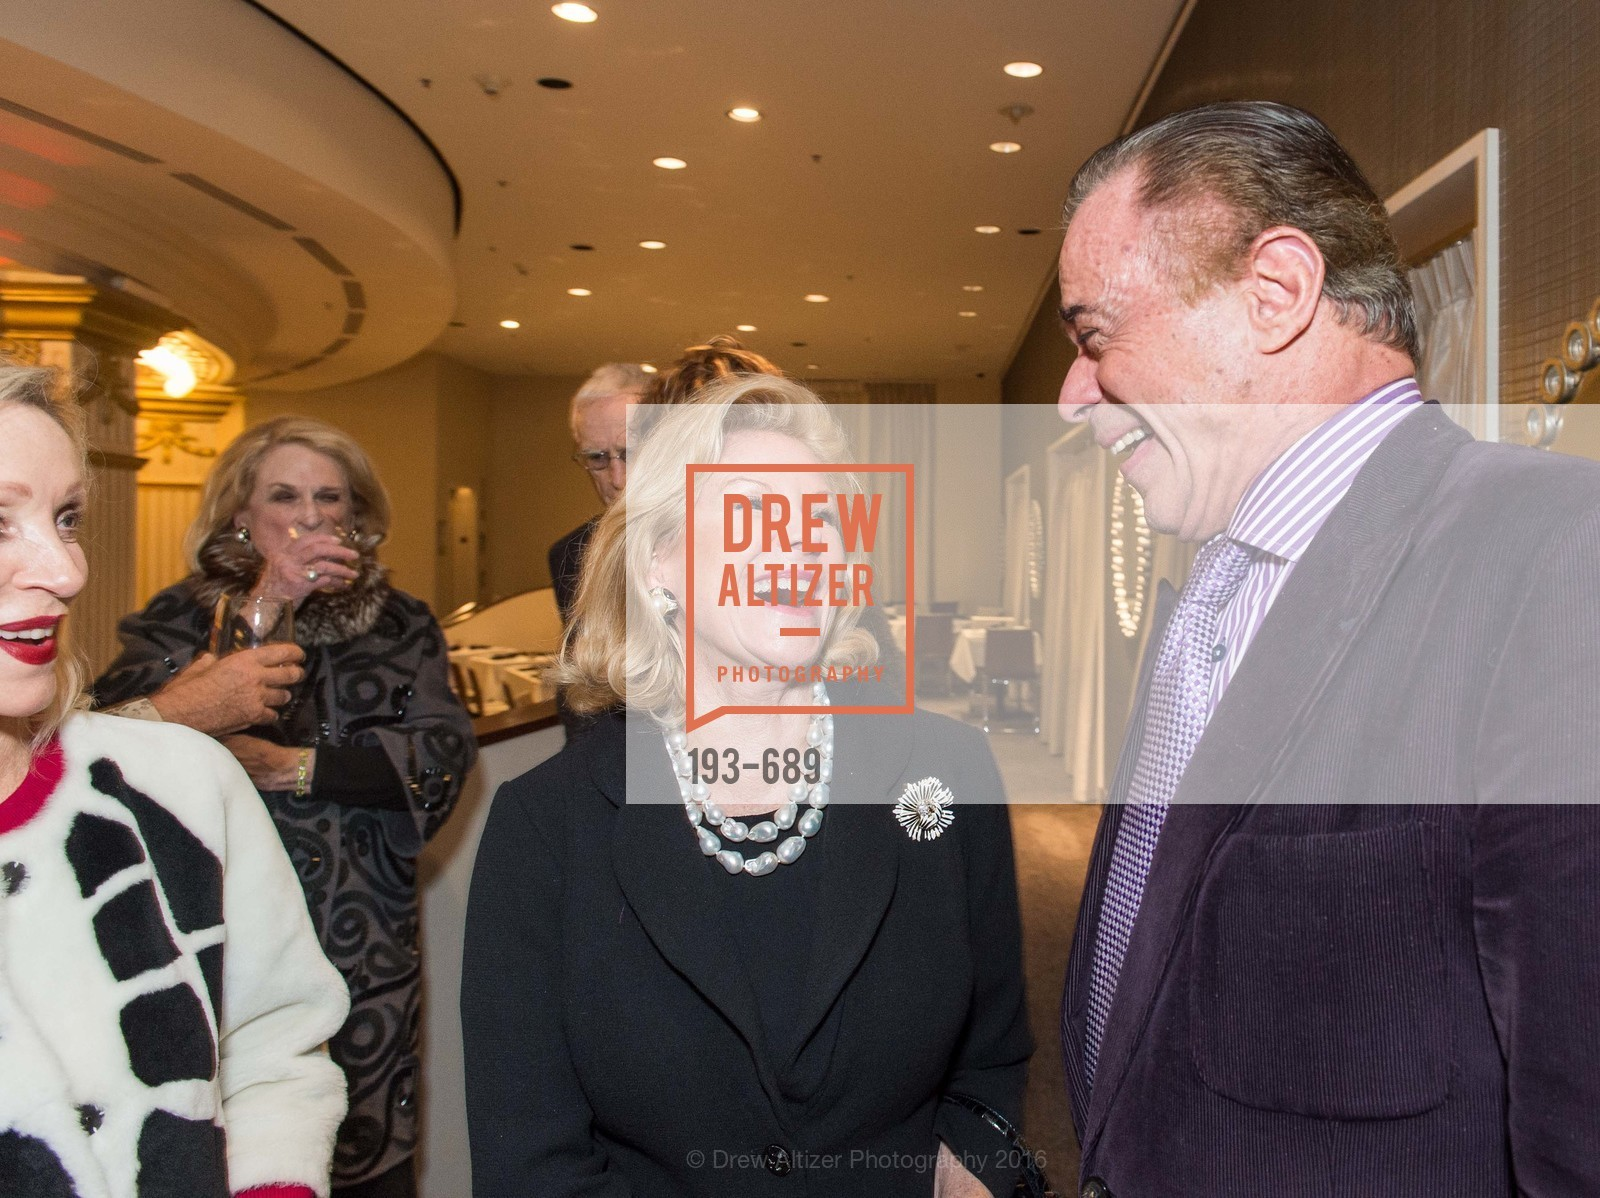 Dede Wilsey, Richard Benefield, Oscar de la Renta Cocktail Party with Boaz Mazor, The Rotunda Restaurant, January 19th, 2016,Drew Altizer, Drew Altizer Photography, full-service agency, private events, San Francisco photographer, photographer california